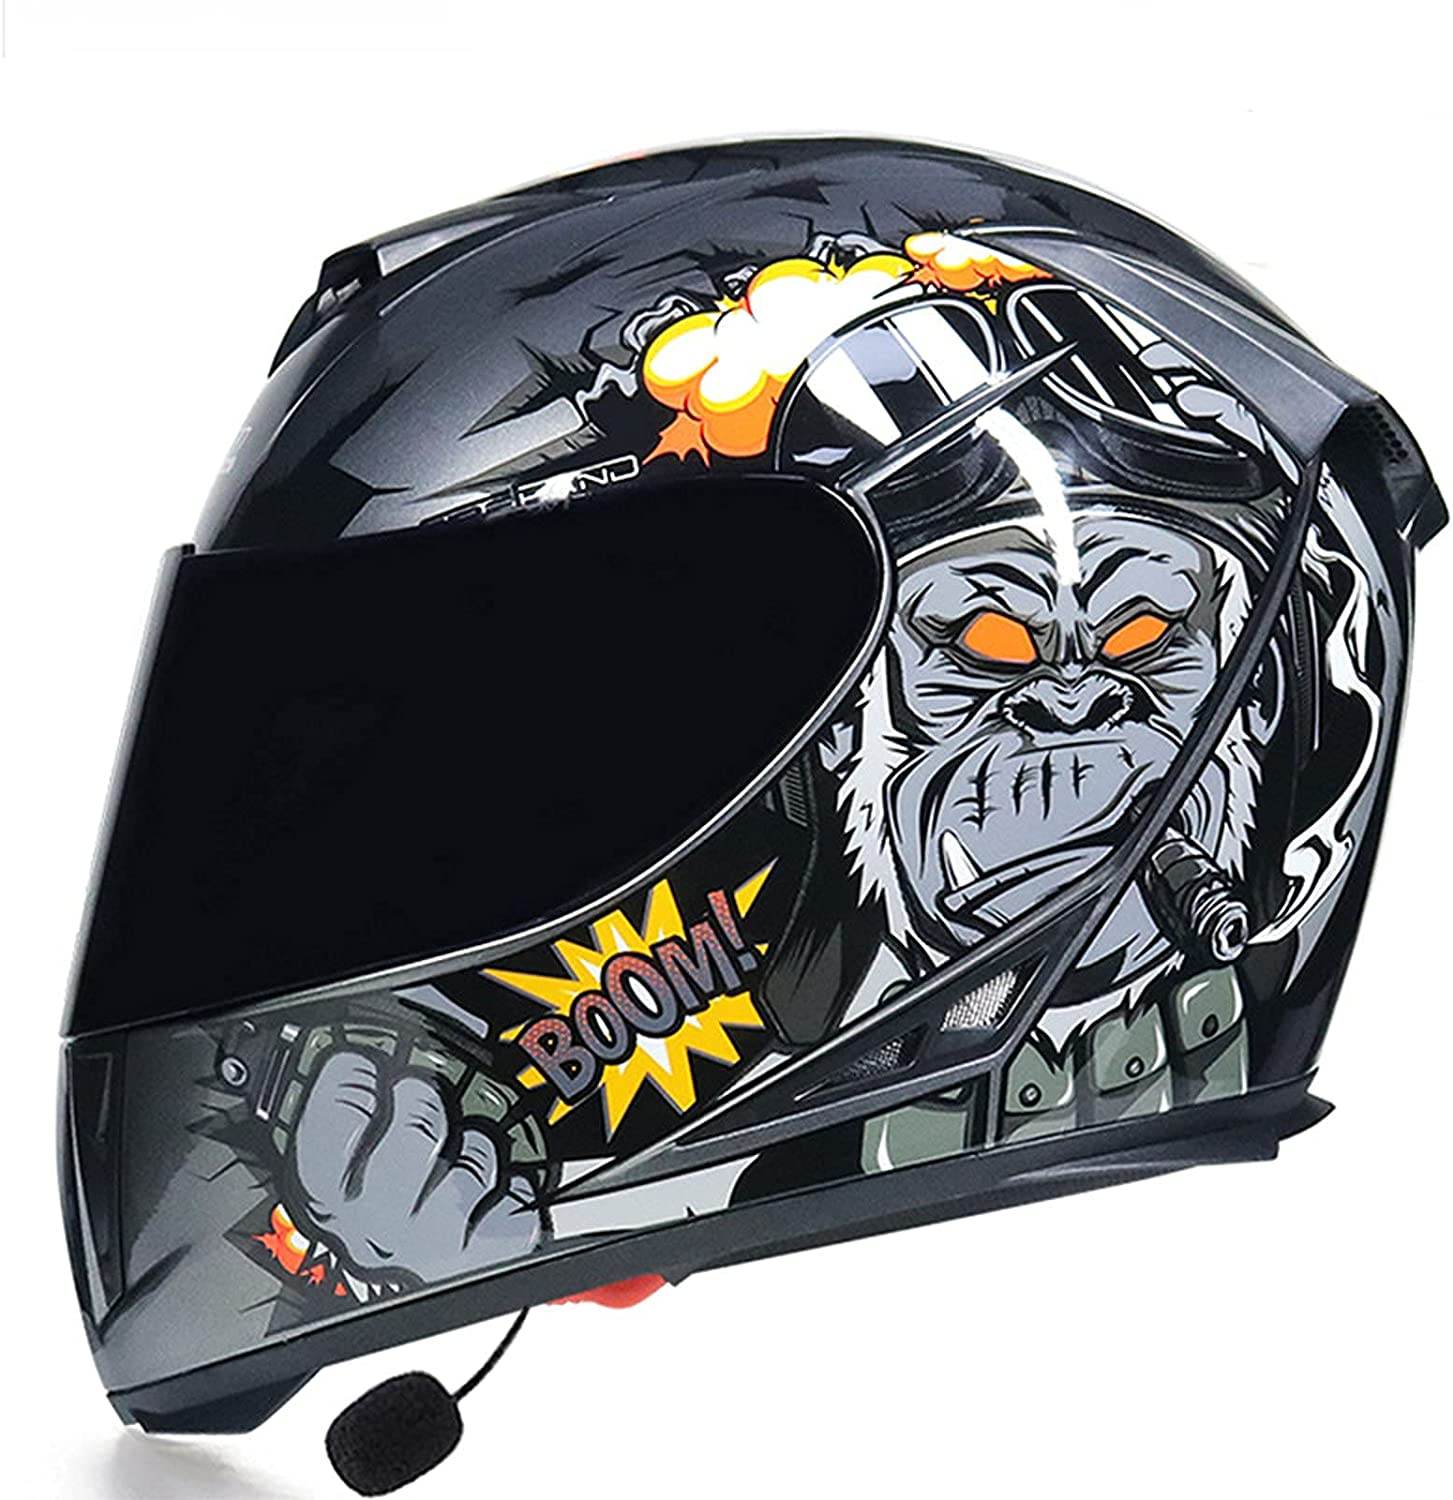 Open-Face Motorbike Helmets Indefinitely Bluetooth Dealing full price reduction Flip Front Mo Up